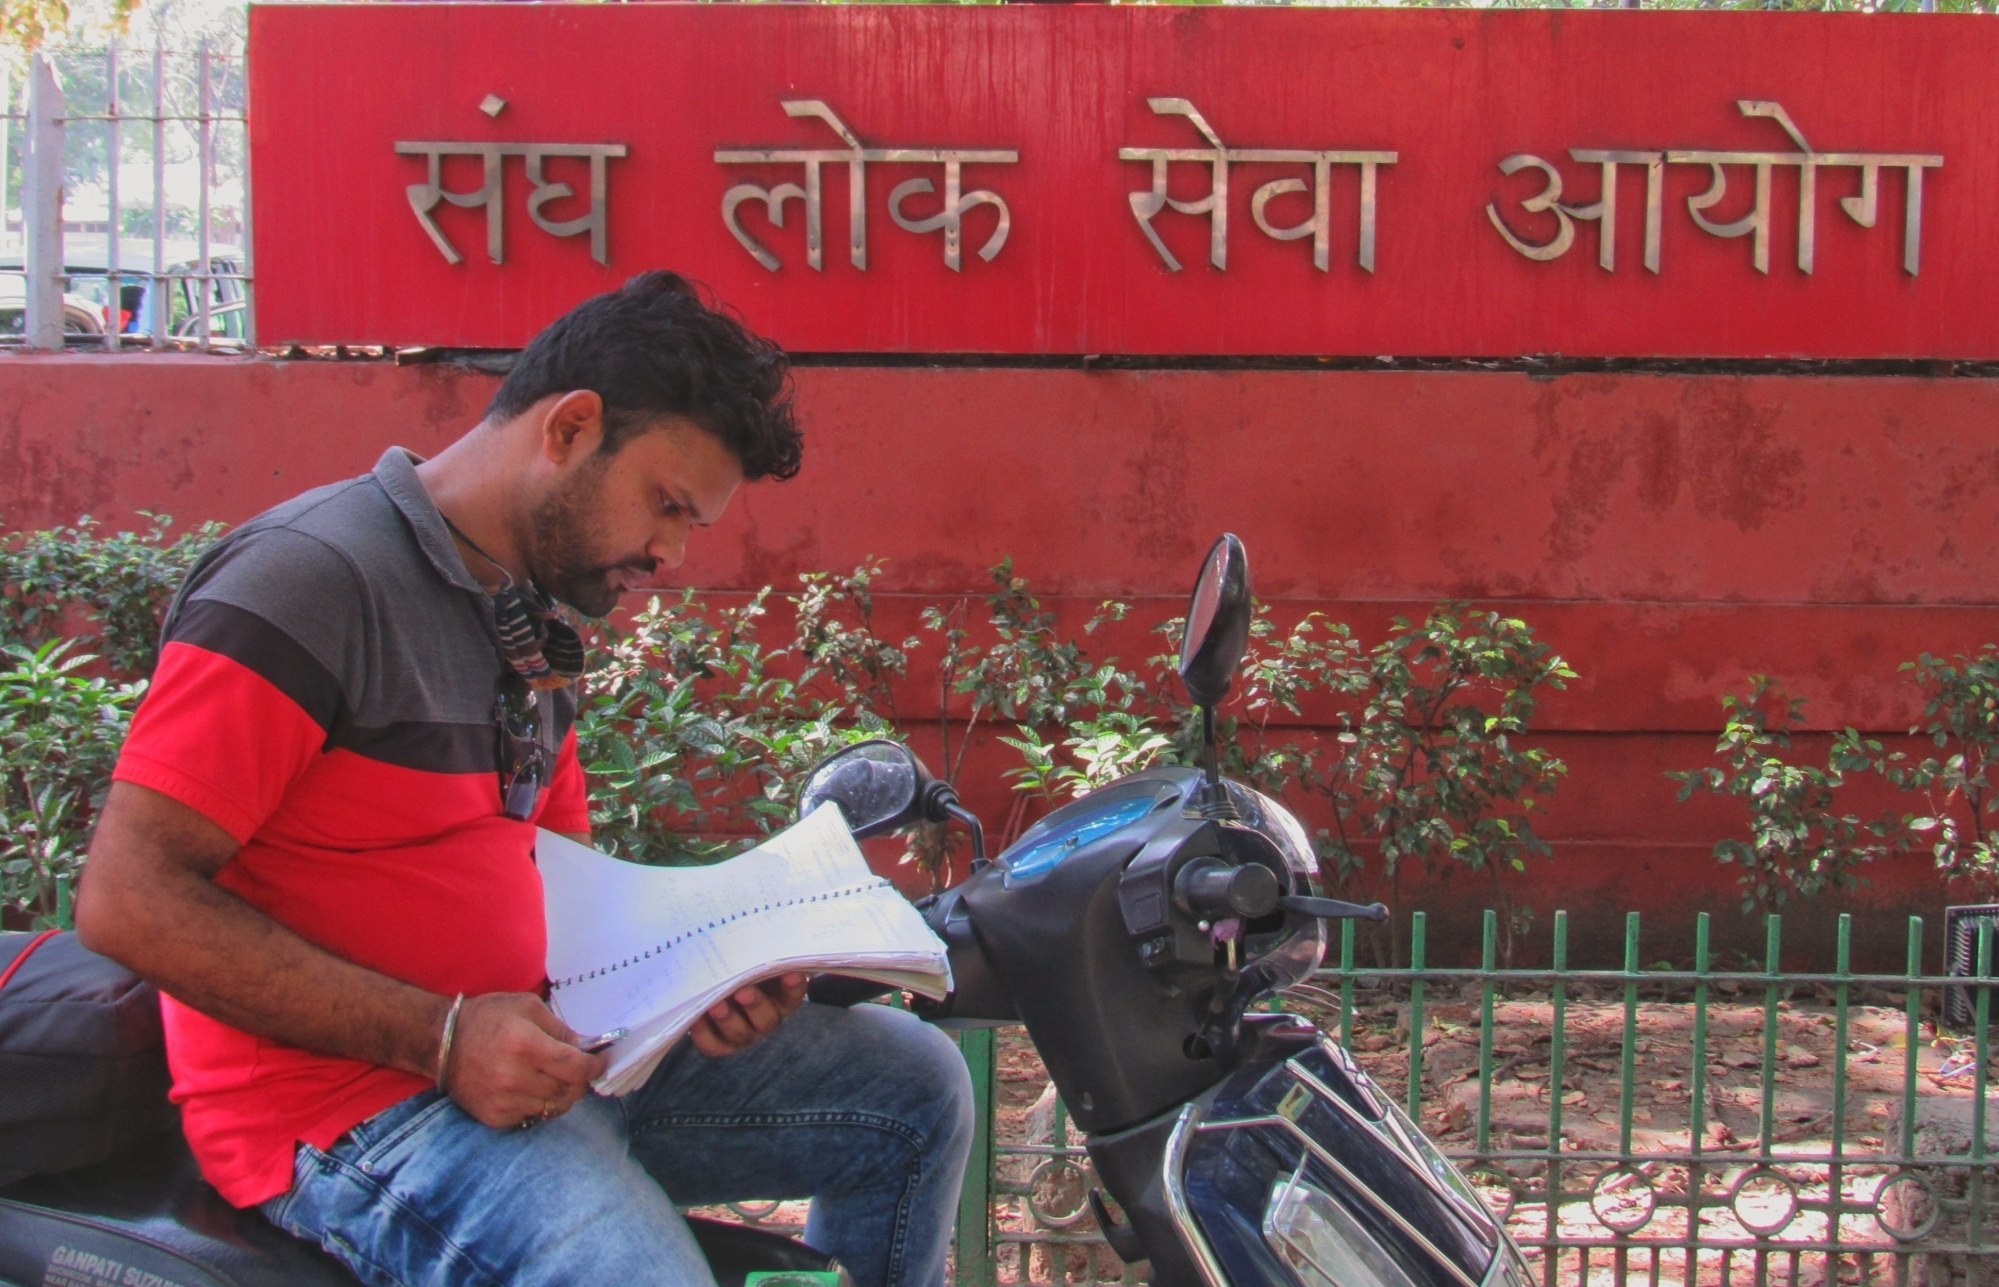 UPSC aspirants stage 'Satyagraha' in Delhi seeking one more attempt after Covid onslaught